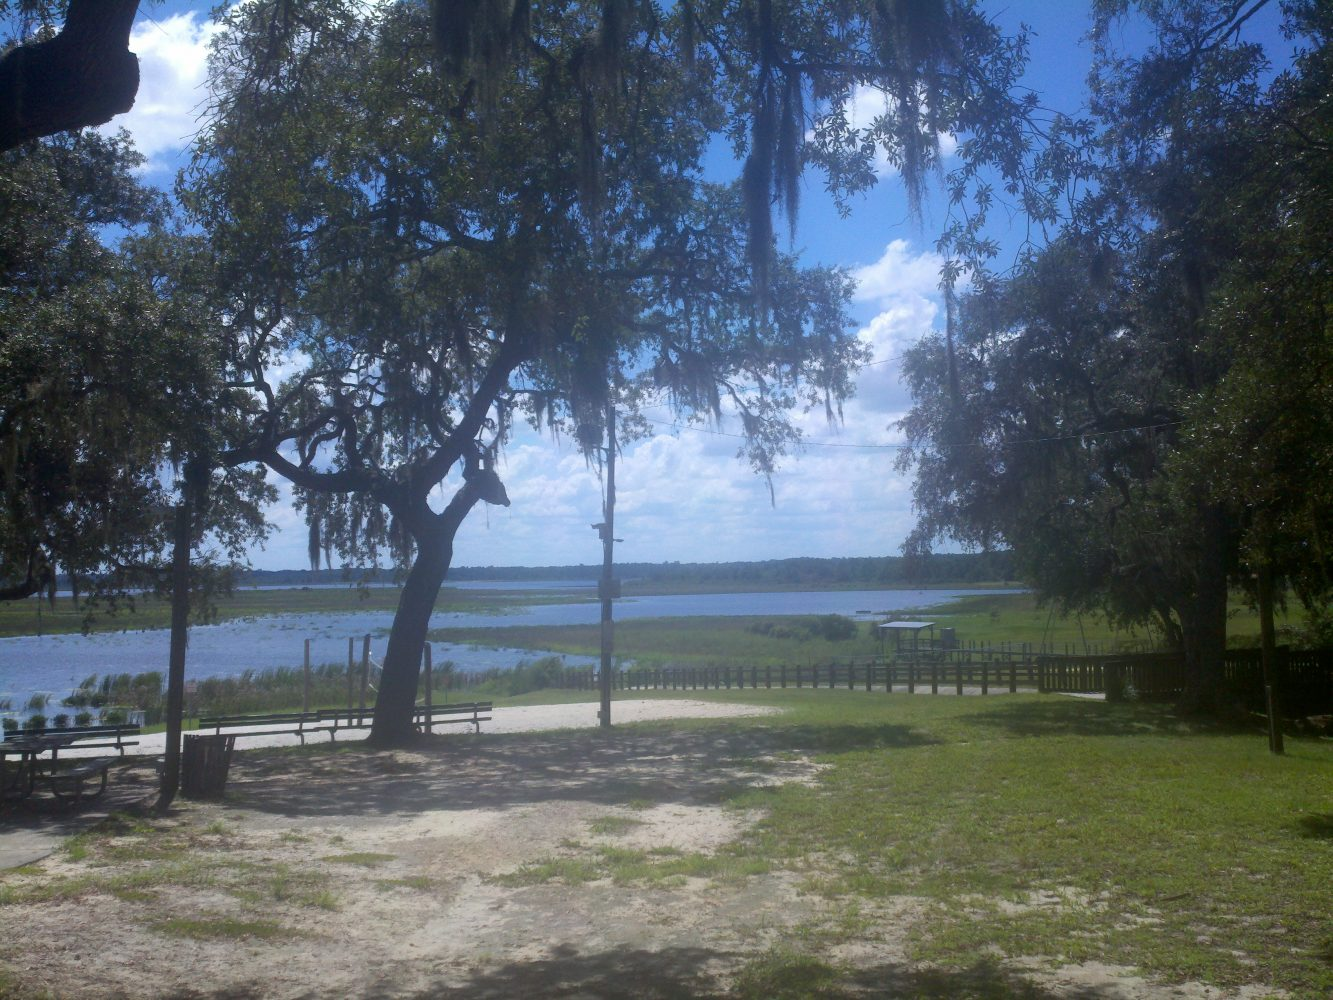 The community is working with SJRWMD on an aquifer water replenishment plan. The plan would focus on bringing more water into the Floridan aquifer, hopefully benefitting areas like Keystone Beach.